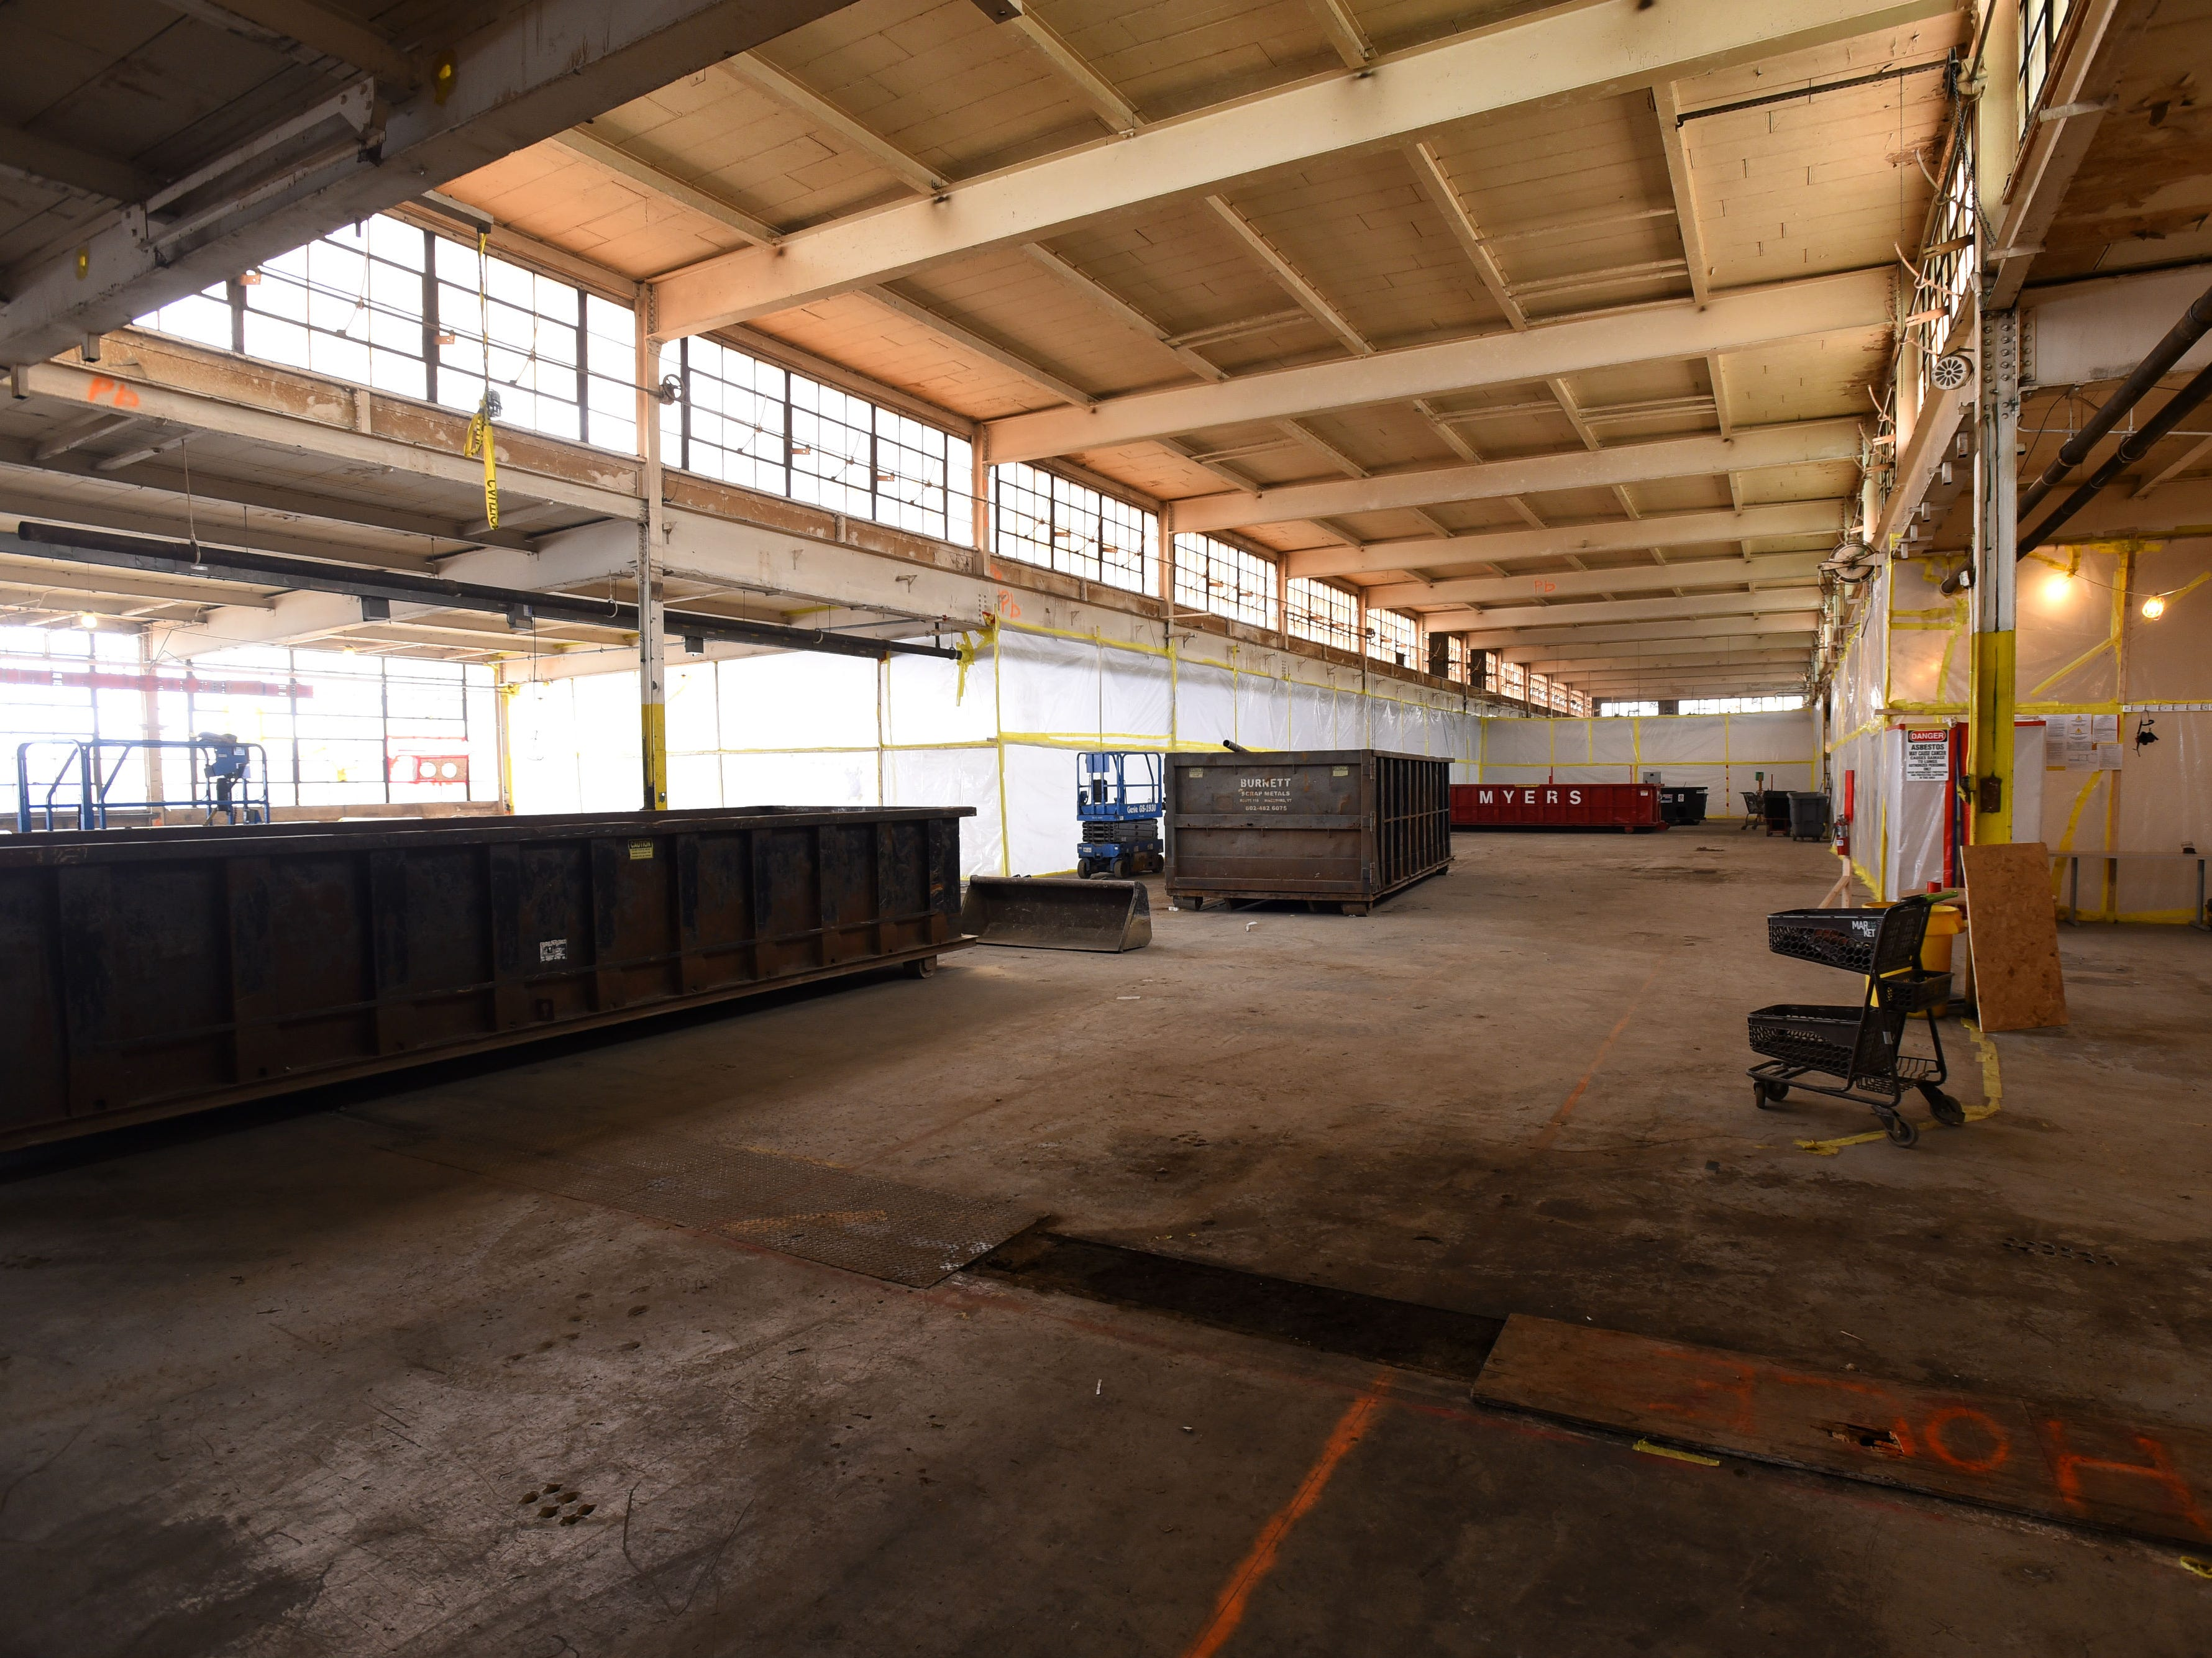 The interior of building 50 seen on Friday, April 12, 2019, at the former Blodgett Oven plant on Lakeside Avenue in Burlington. The 14 acre site is being redeveloped into an energy efficient campus for companies.